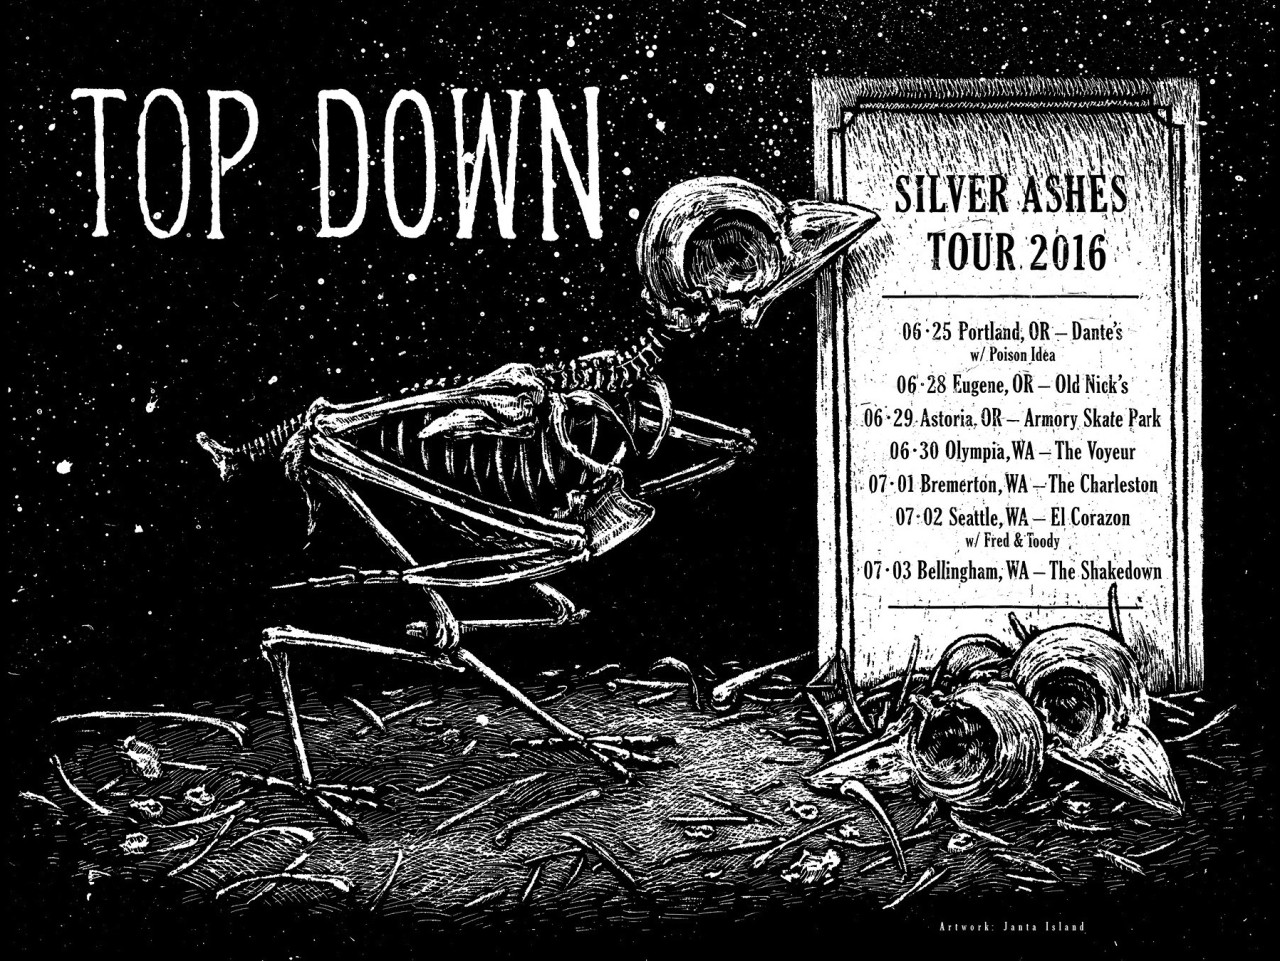 TOP DOWN Silver Ashes Tour Poster 2016